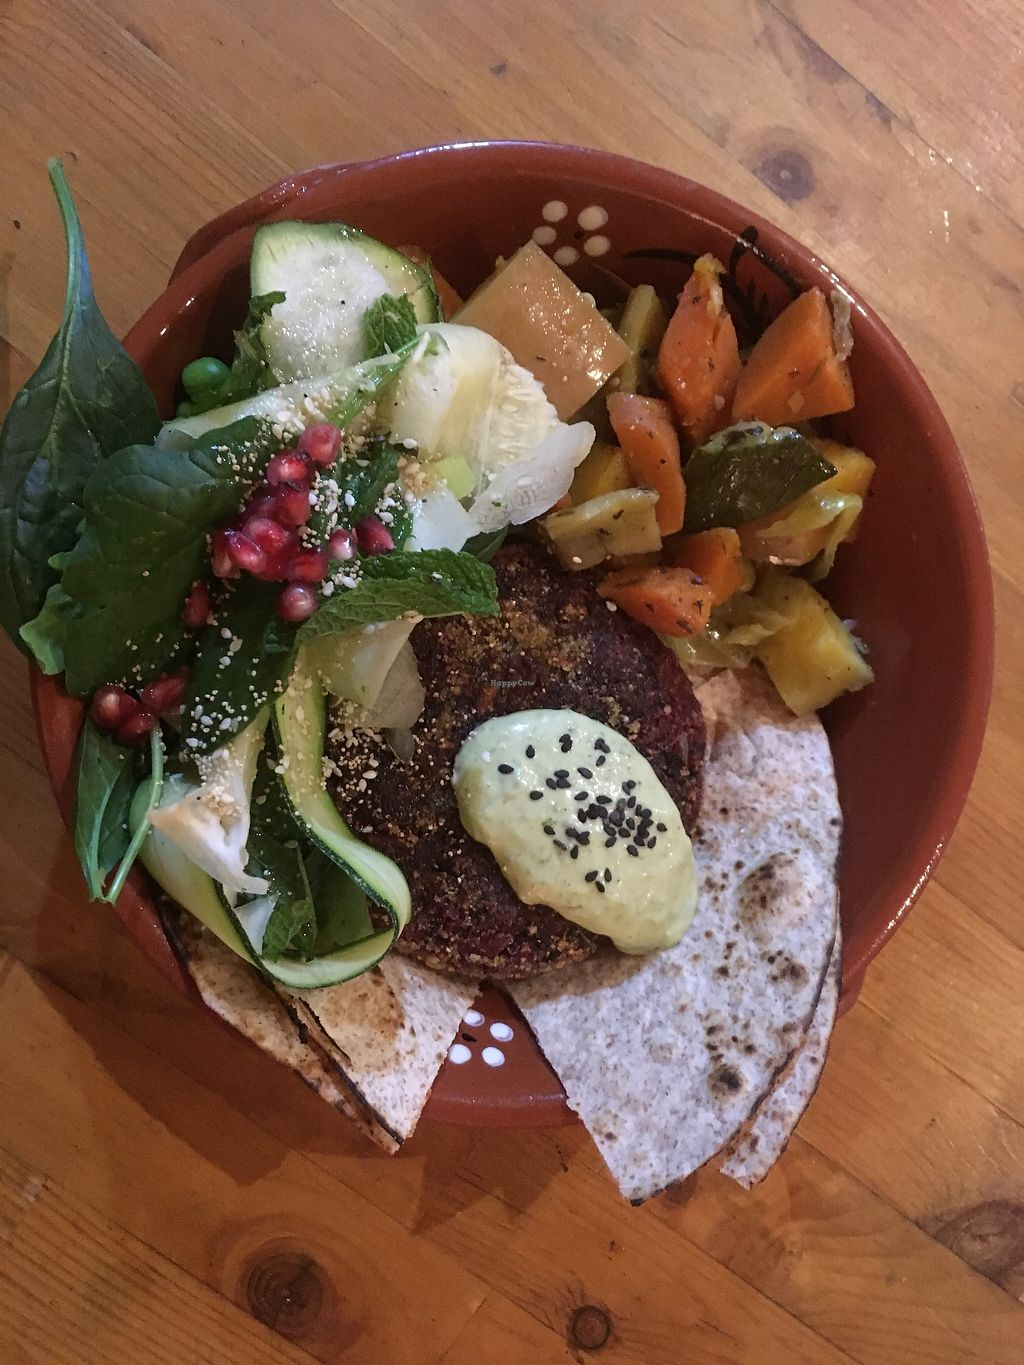 """Photo of Princesa do Castelo  by <a href=""""/members/profile/msousa"""">msousa</a> <br/>Beetroot Burger plate! ?? Stewed root veg and potato Lovely salad with a hint of anís and açaí <br/> September 19, 2017  - <a href='/contact/abuse/image/37171/306228'>Report</a>"""